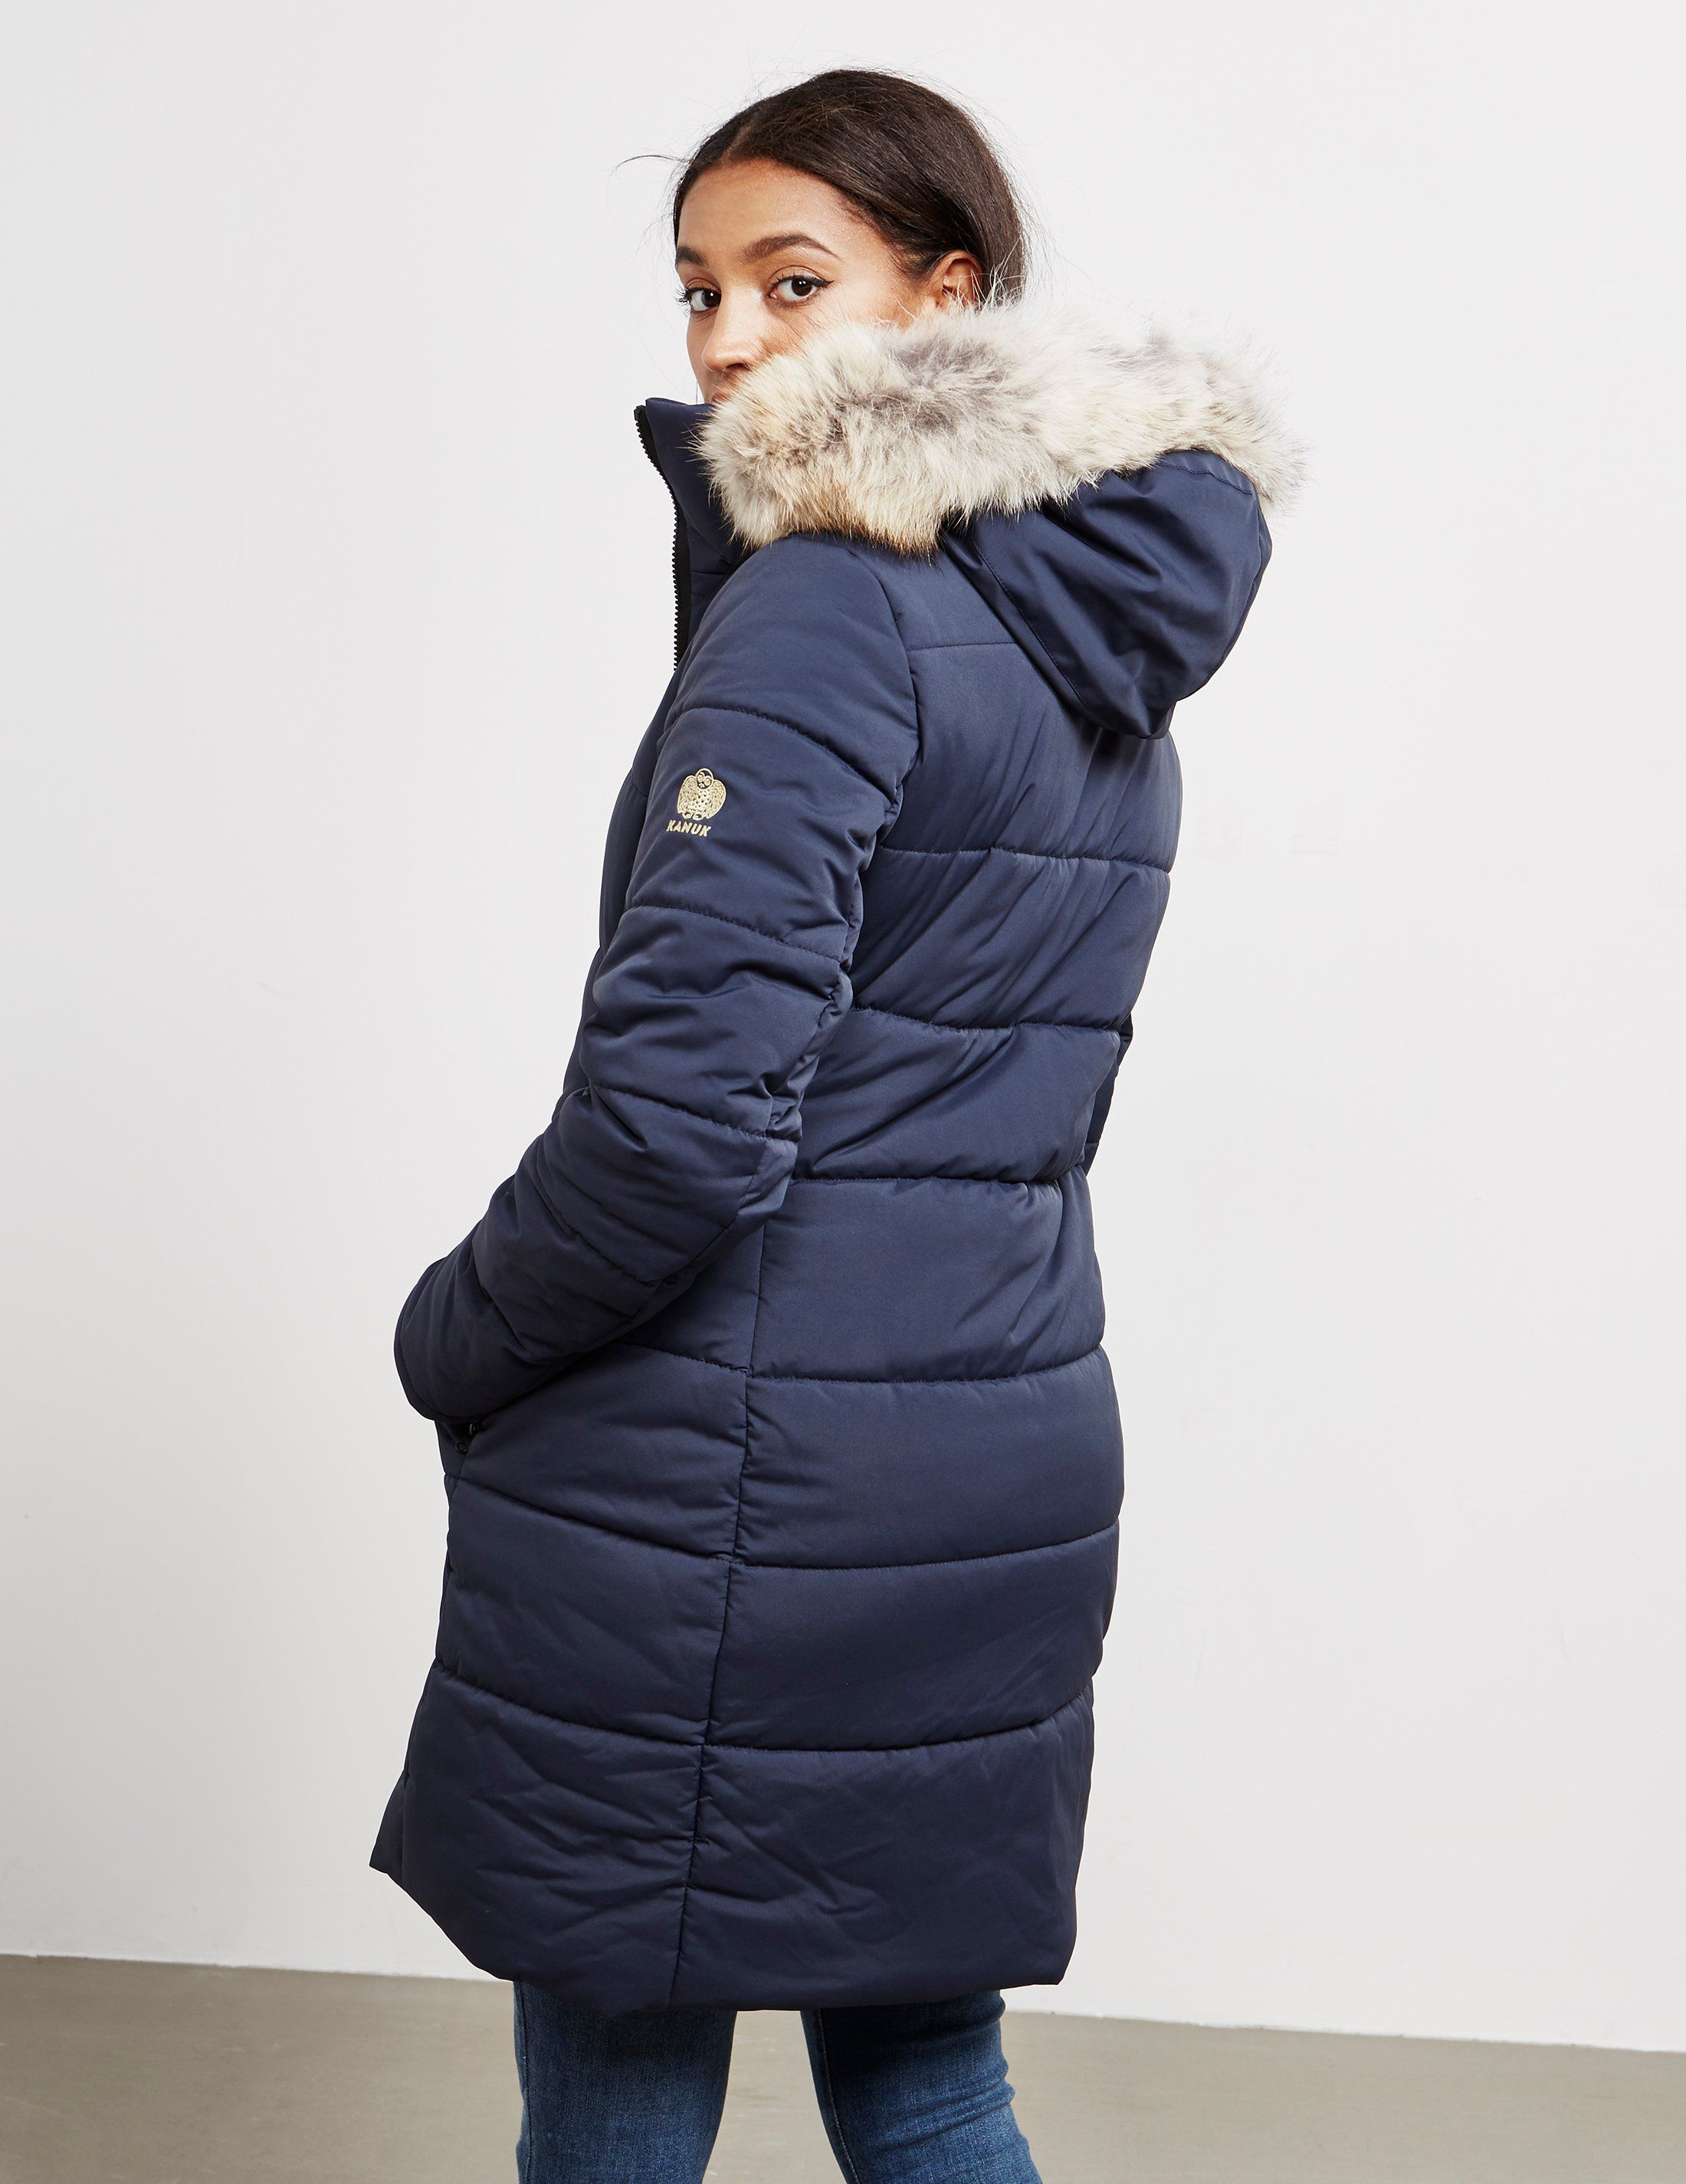 Kanuk Meteorite Padded Jacket - Online Exclusive